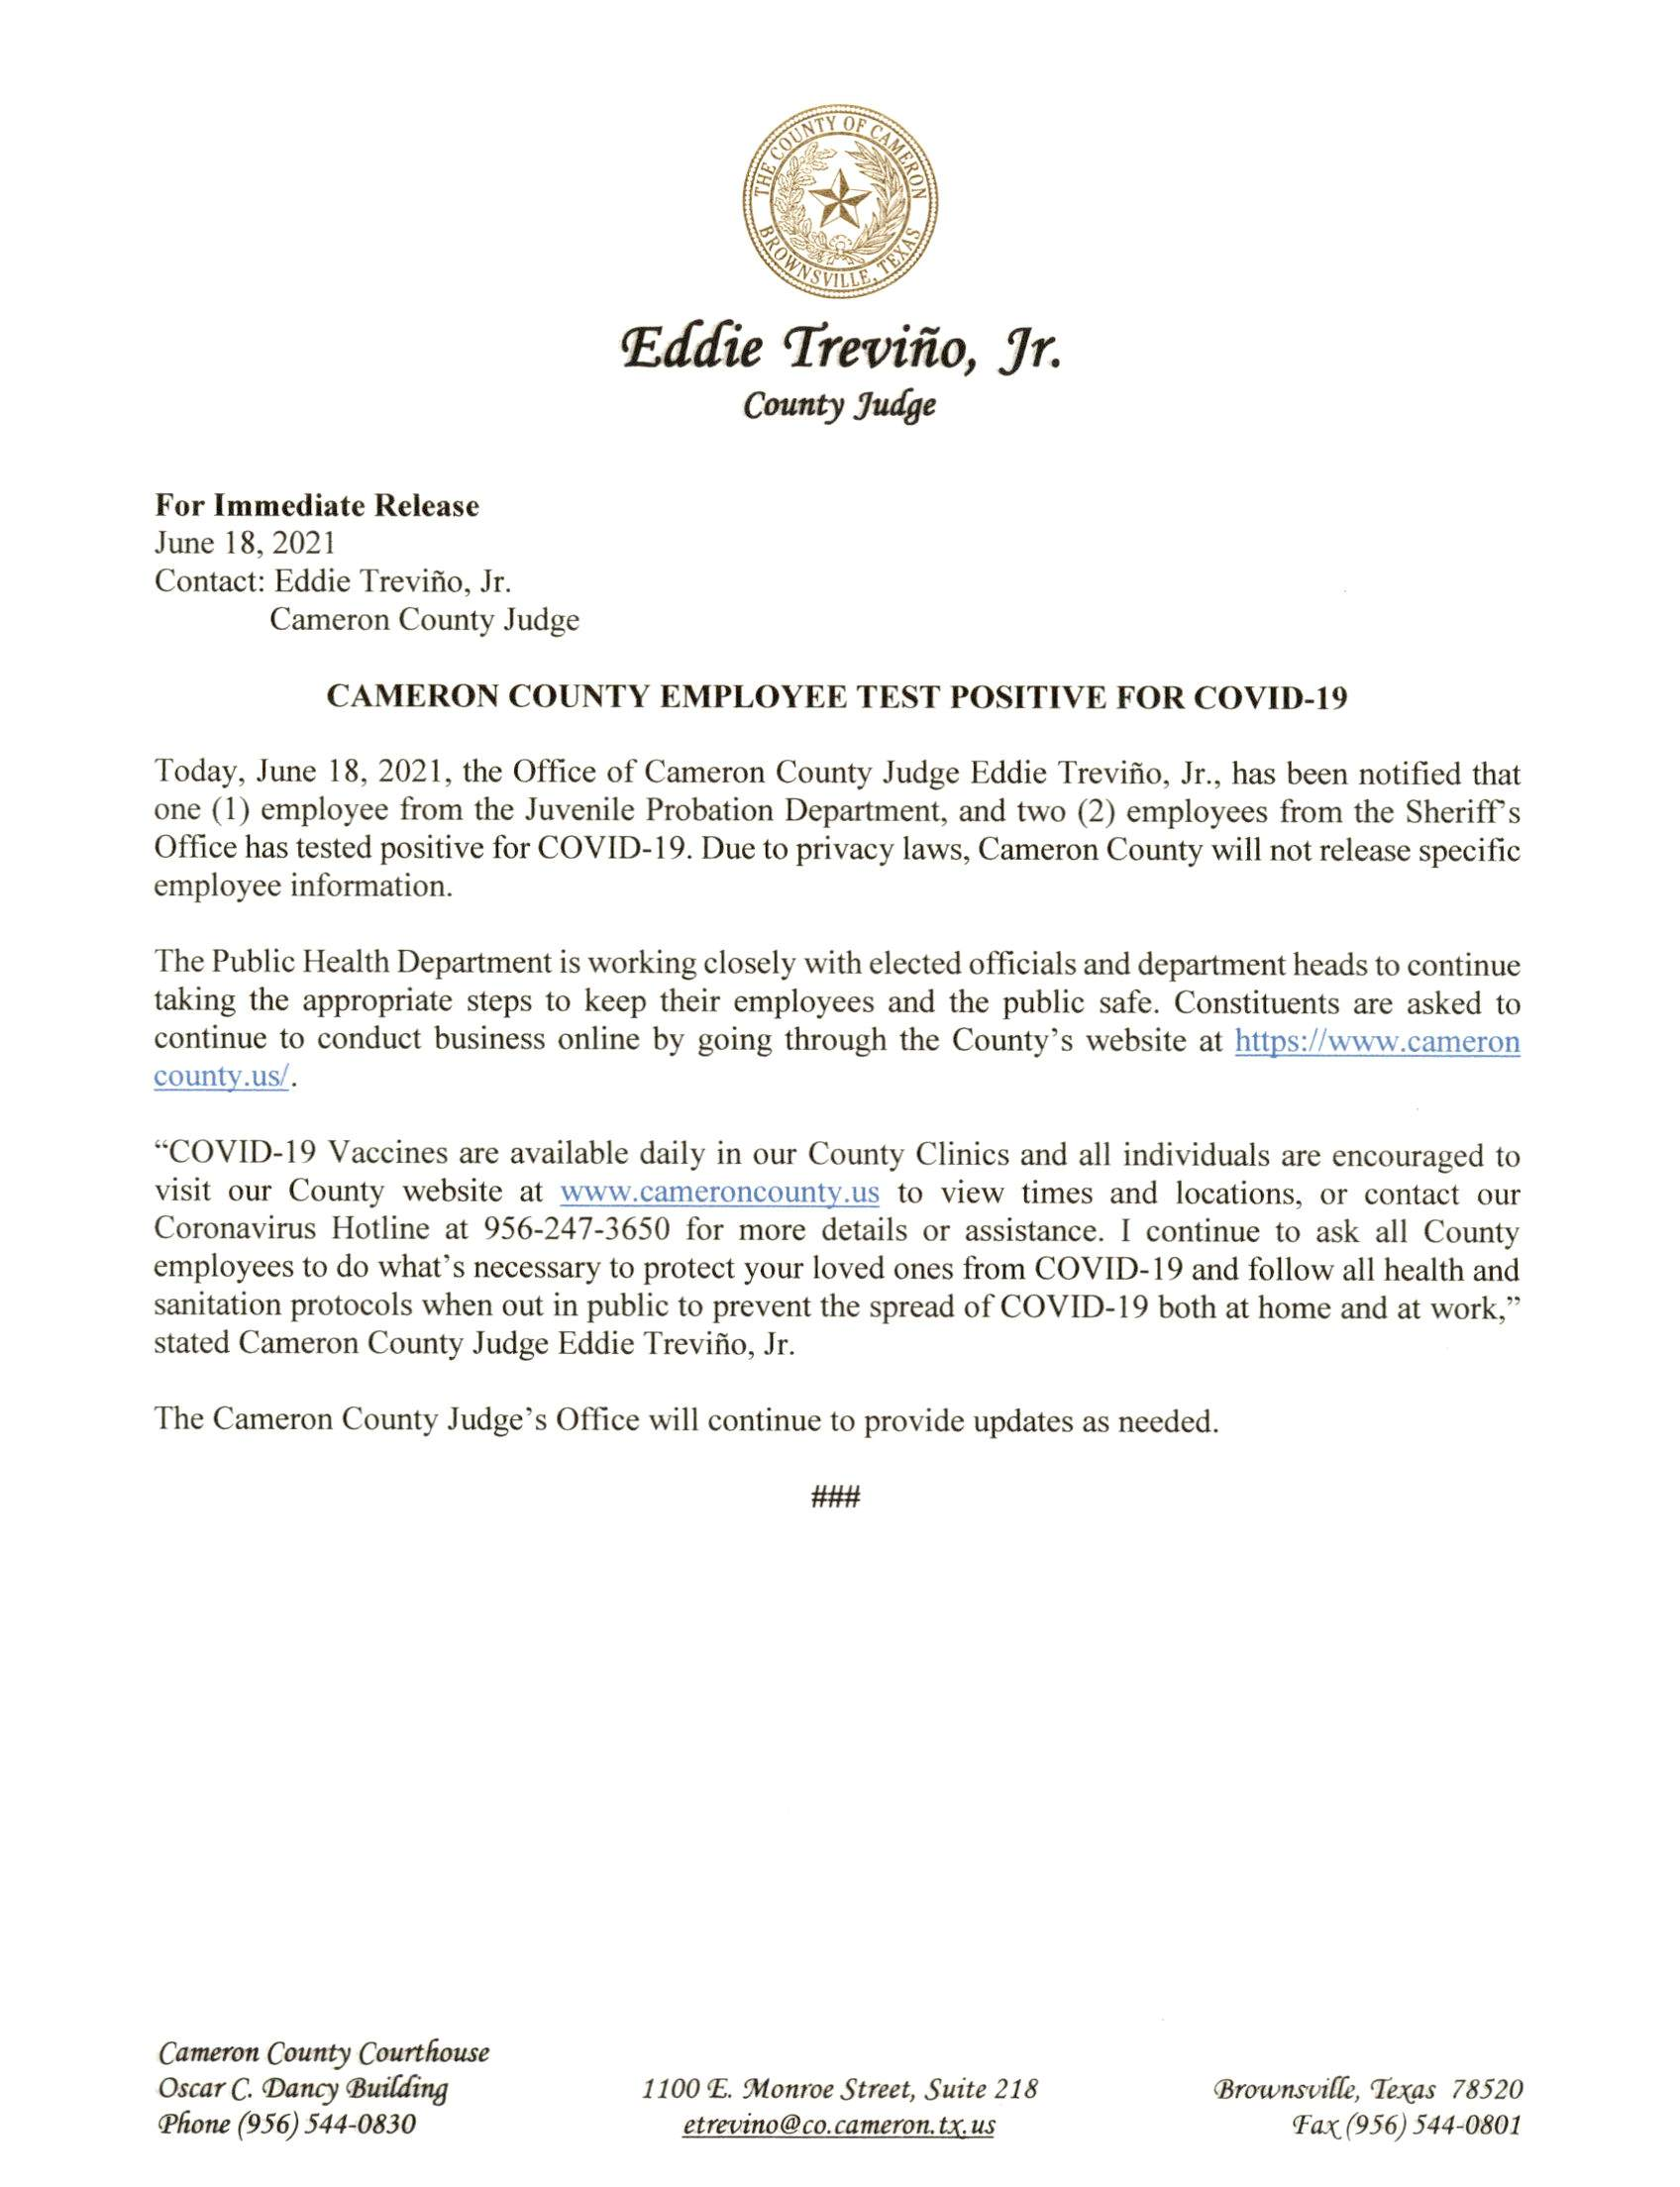 2021.06.18 PR Cameron County Employee Test Positive For COVID 19